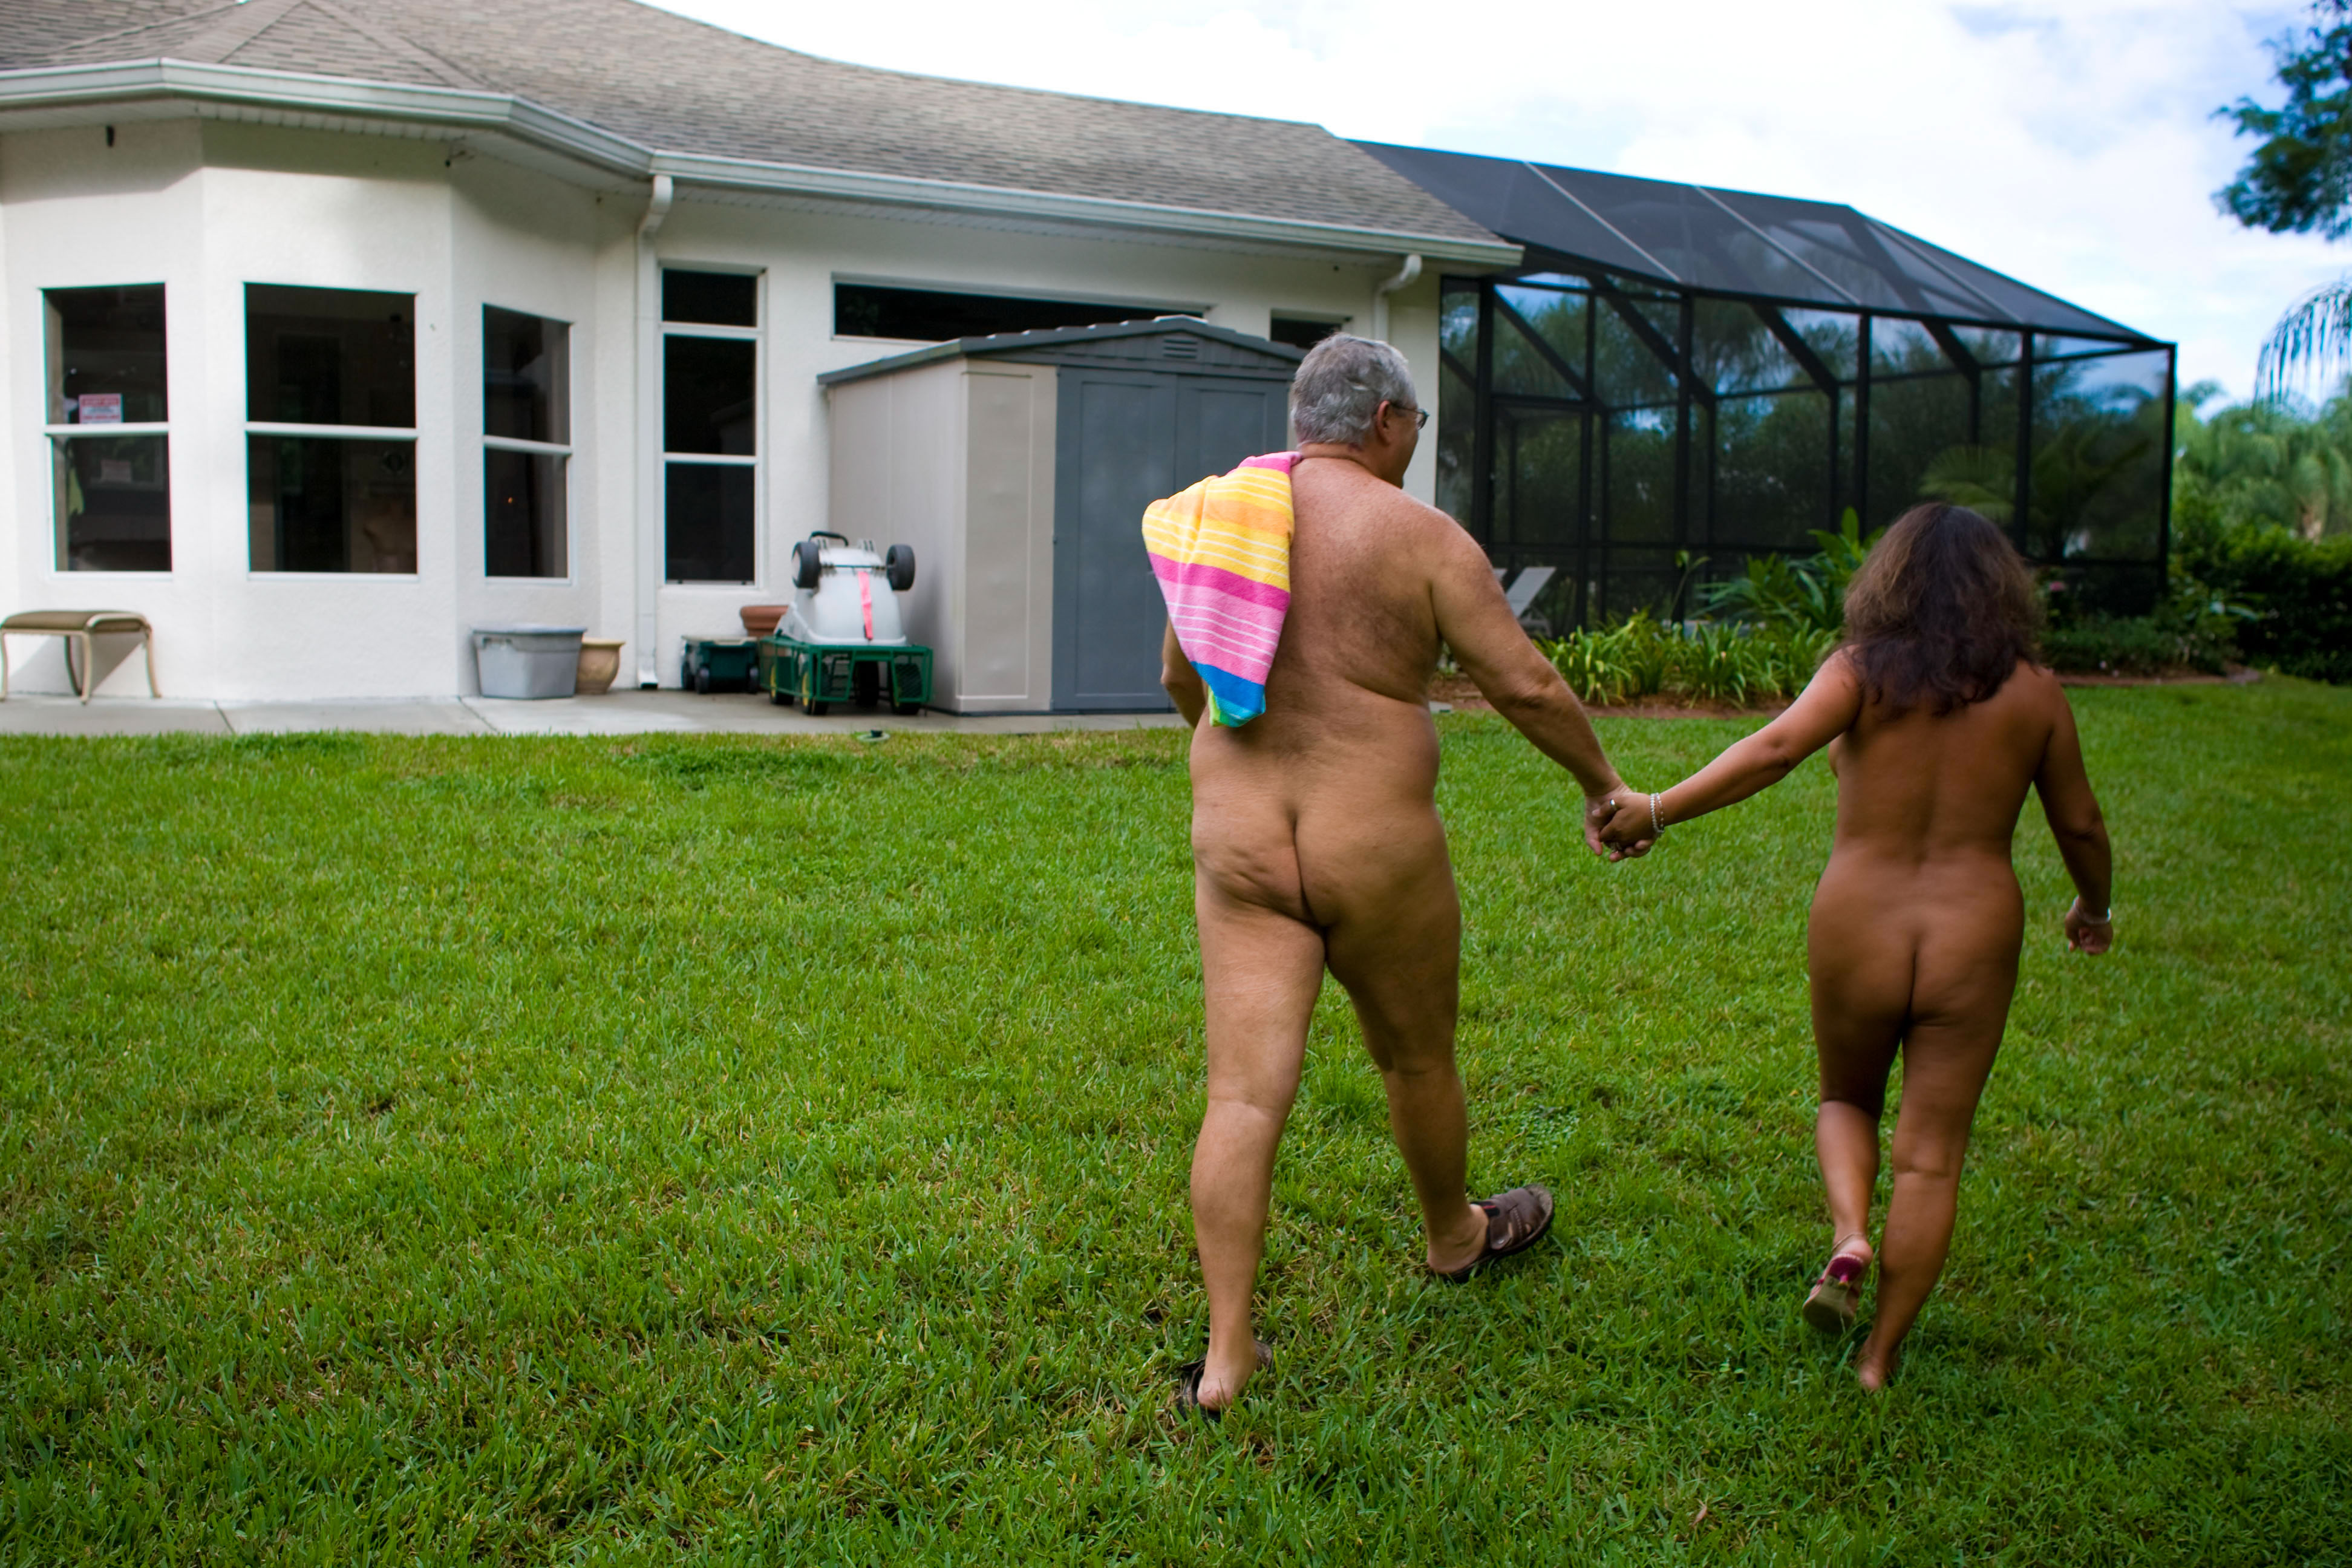 Florida Photography | Nudists - Editorial & Documentary | Steven Martine